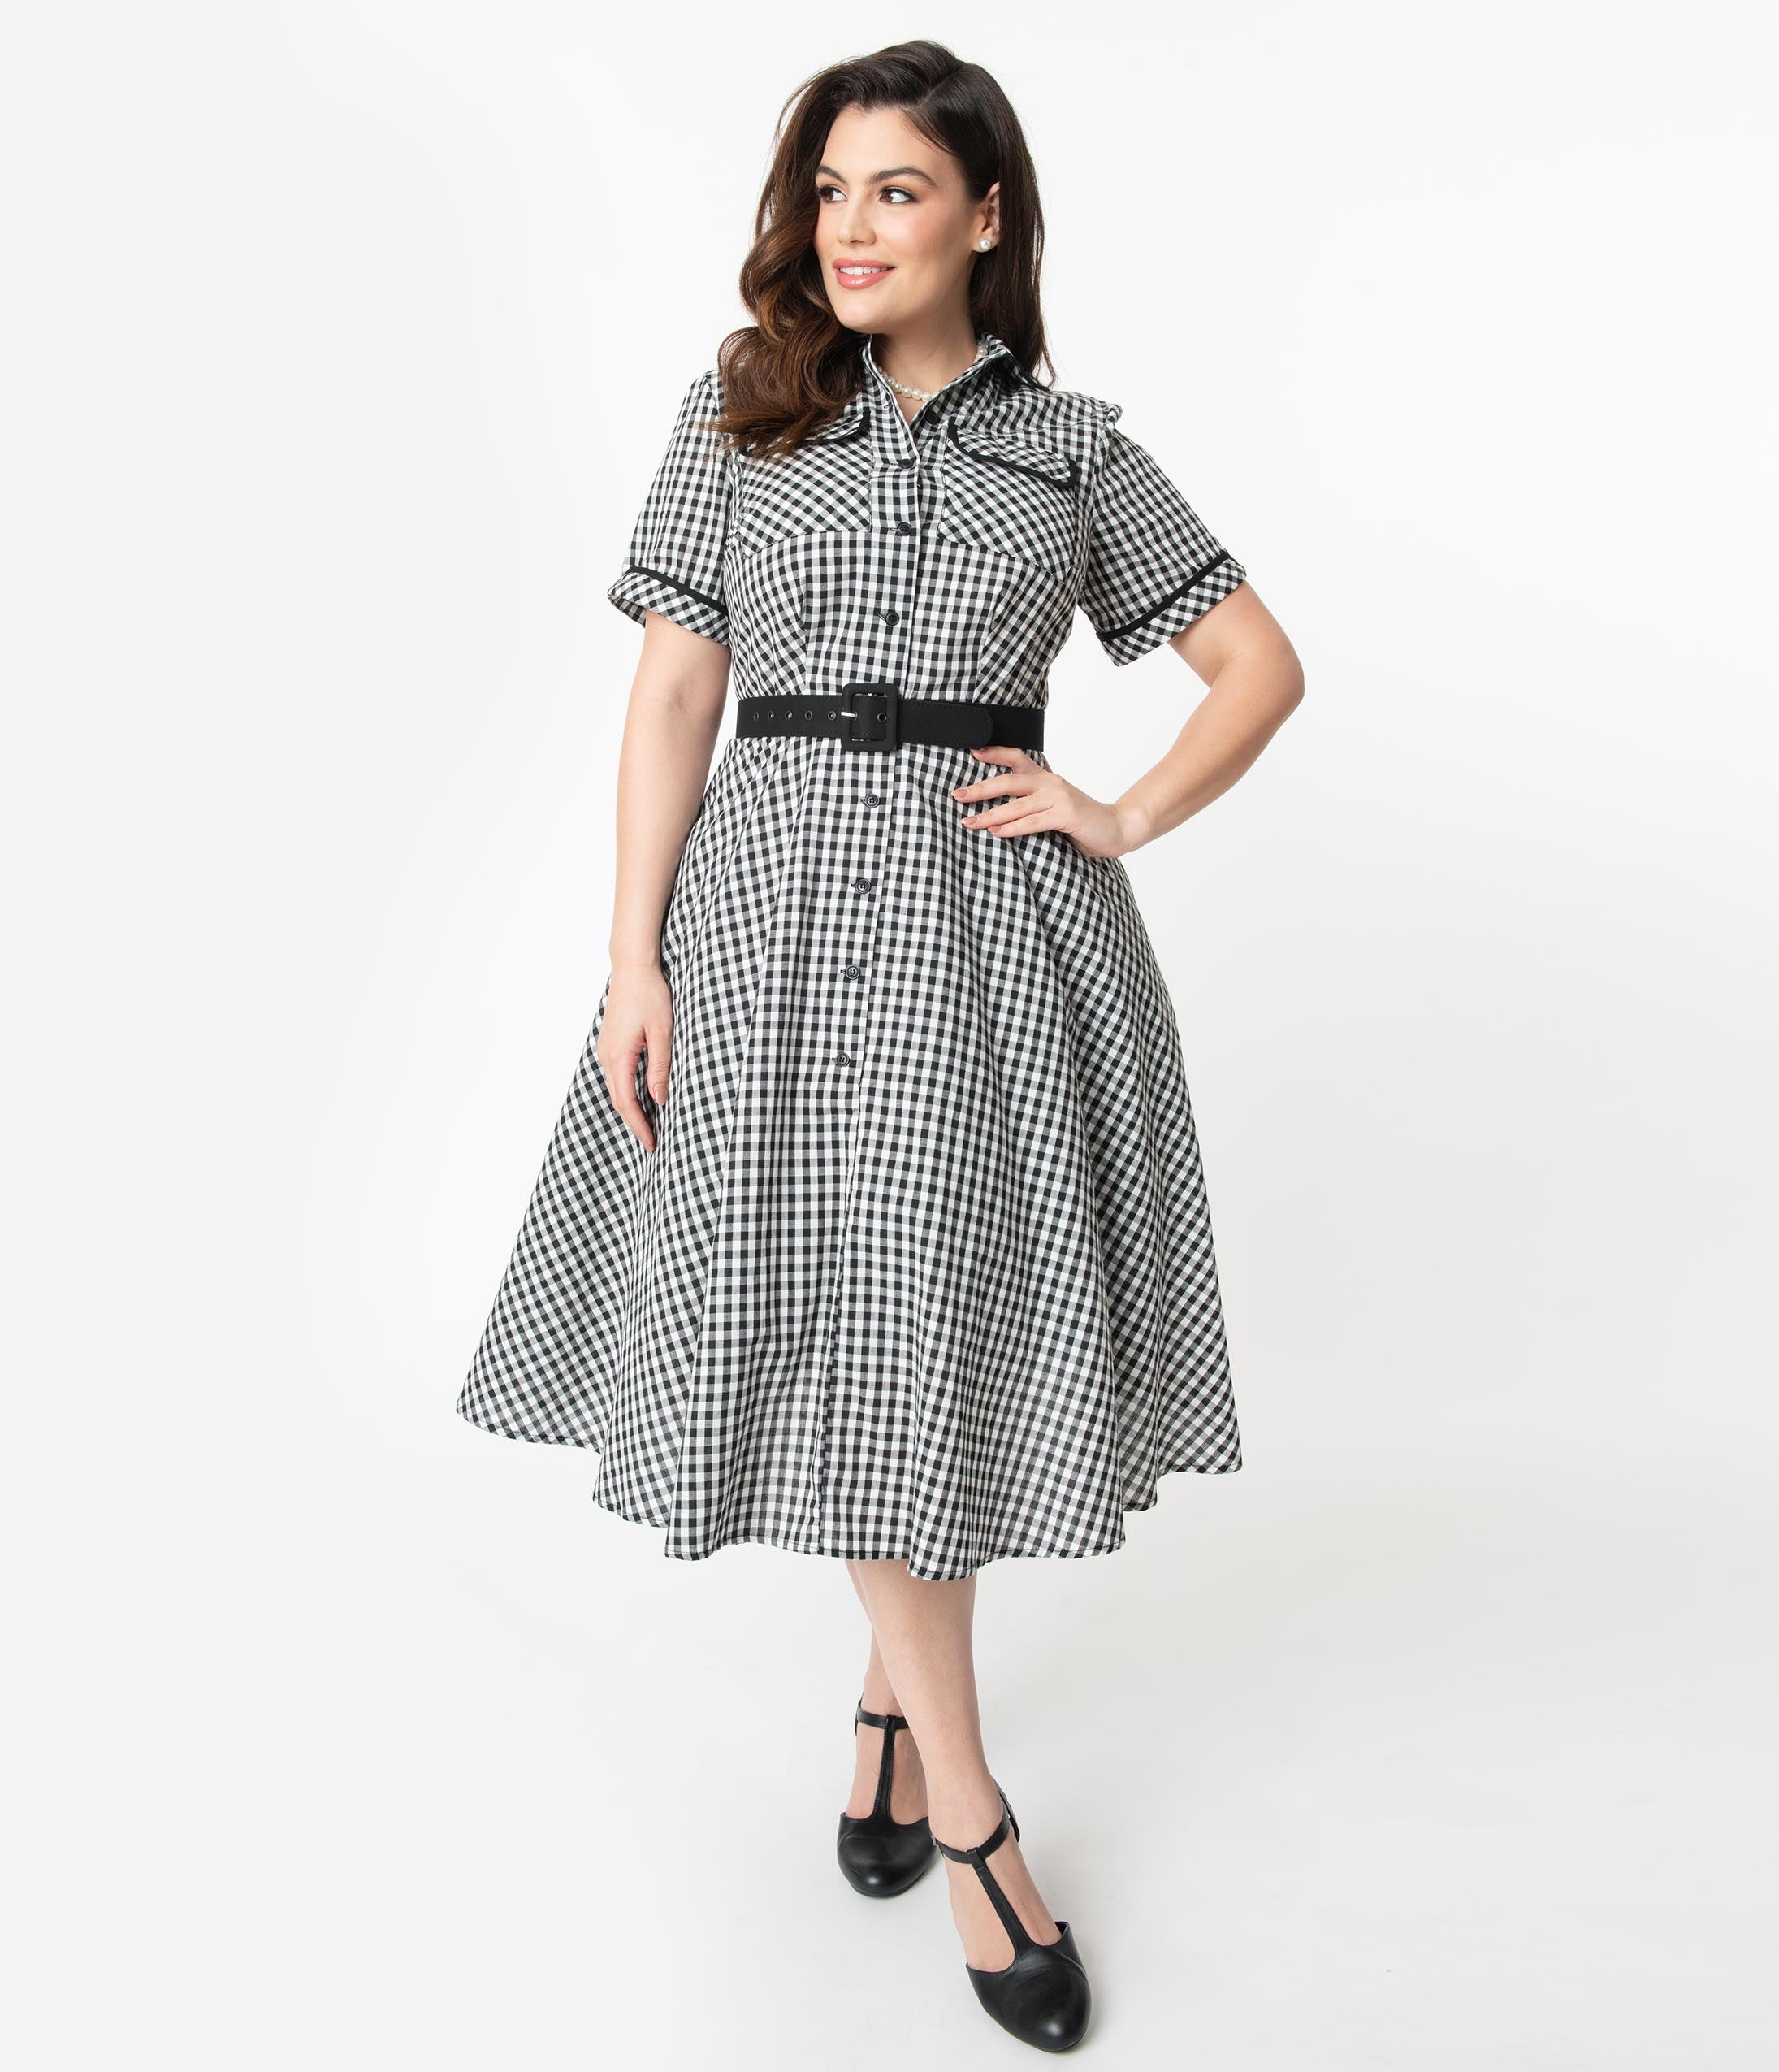 1950s Plus Size Fashion & Clothing History I Love Lucy X Unique Vintage Plus Size Black  White Gingham Ethel Swing Dress $98.00 AT vintagedancer.com